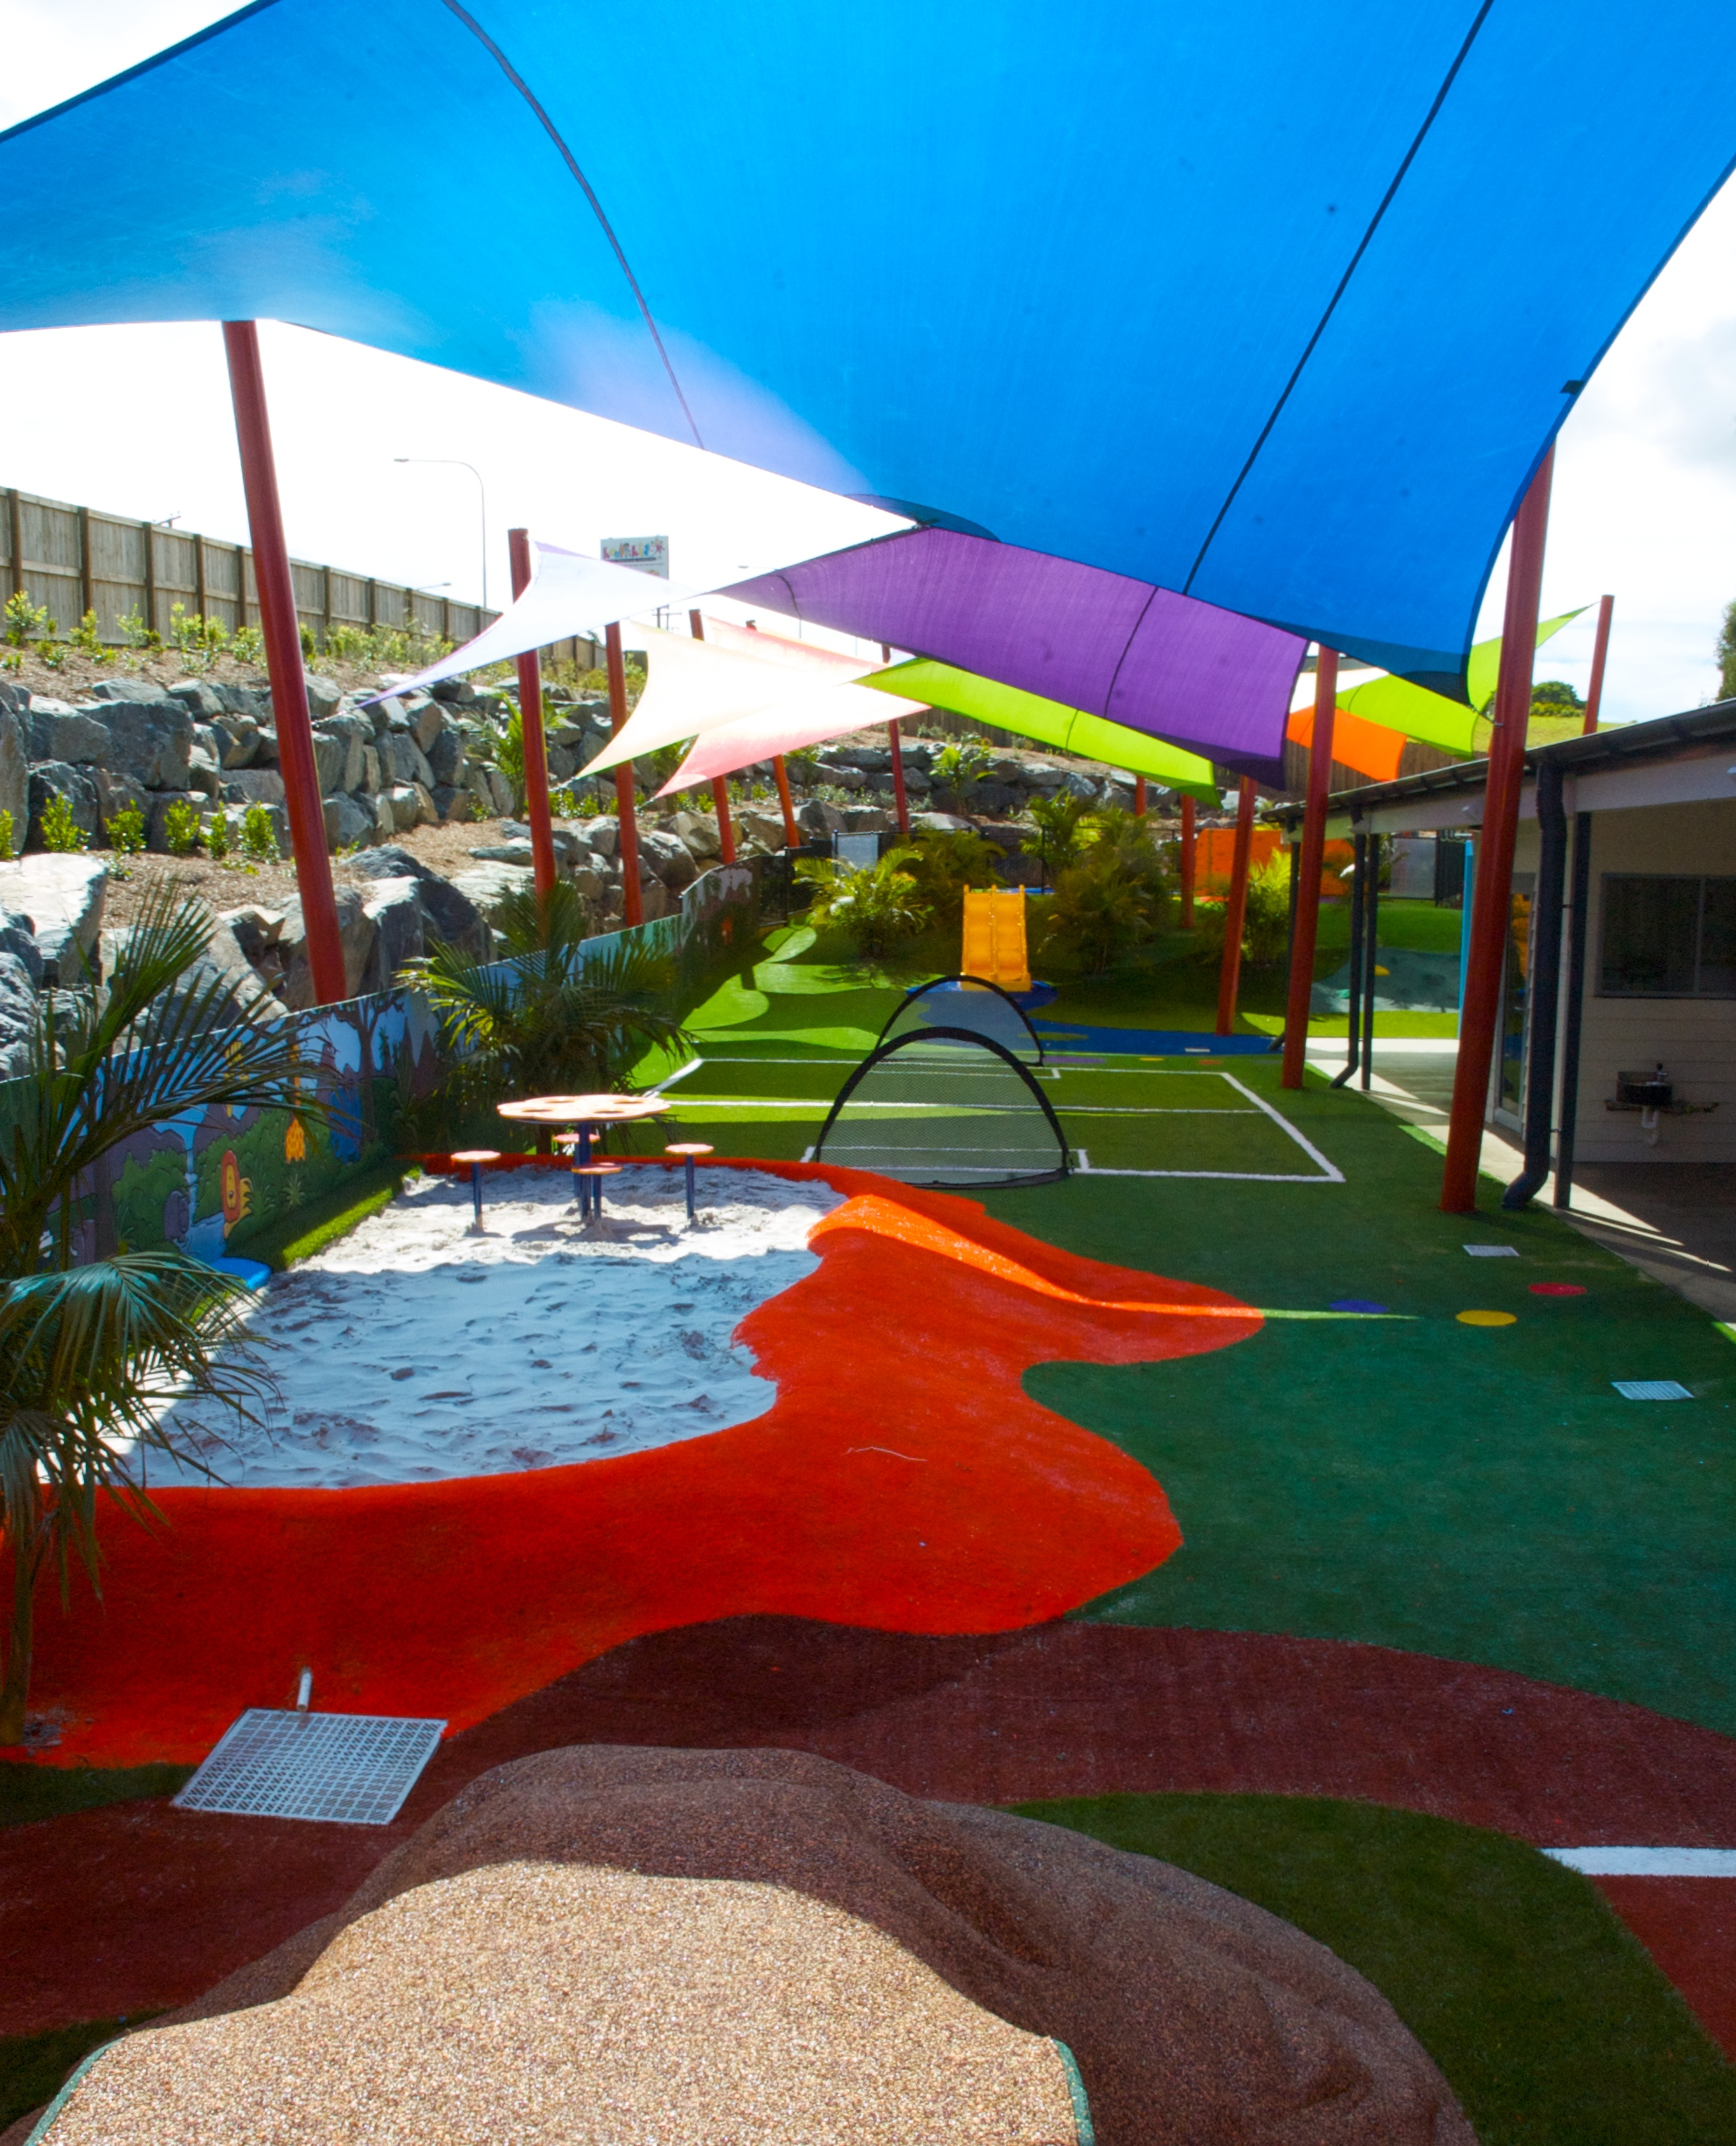 Kool Kids Early Learning Centre Artificial Turf